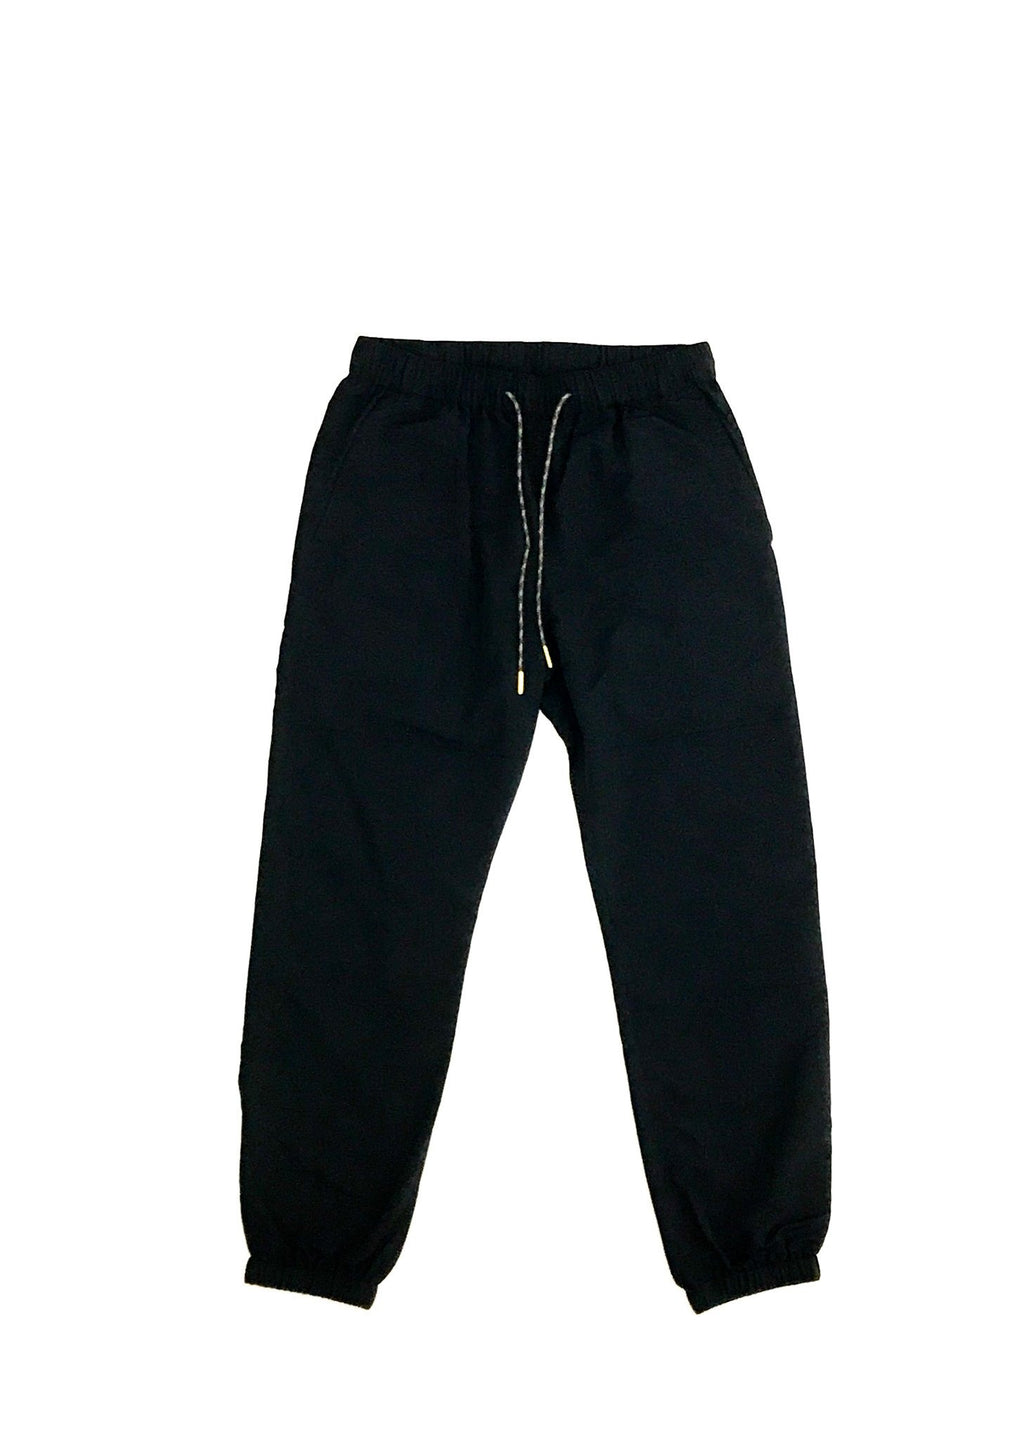 GREI new york (グレイ) / TRACK PANTS 4-PLY DWR FINISH BLACK。正面画像。